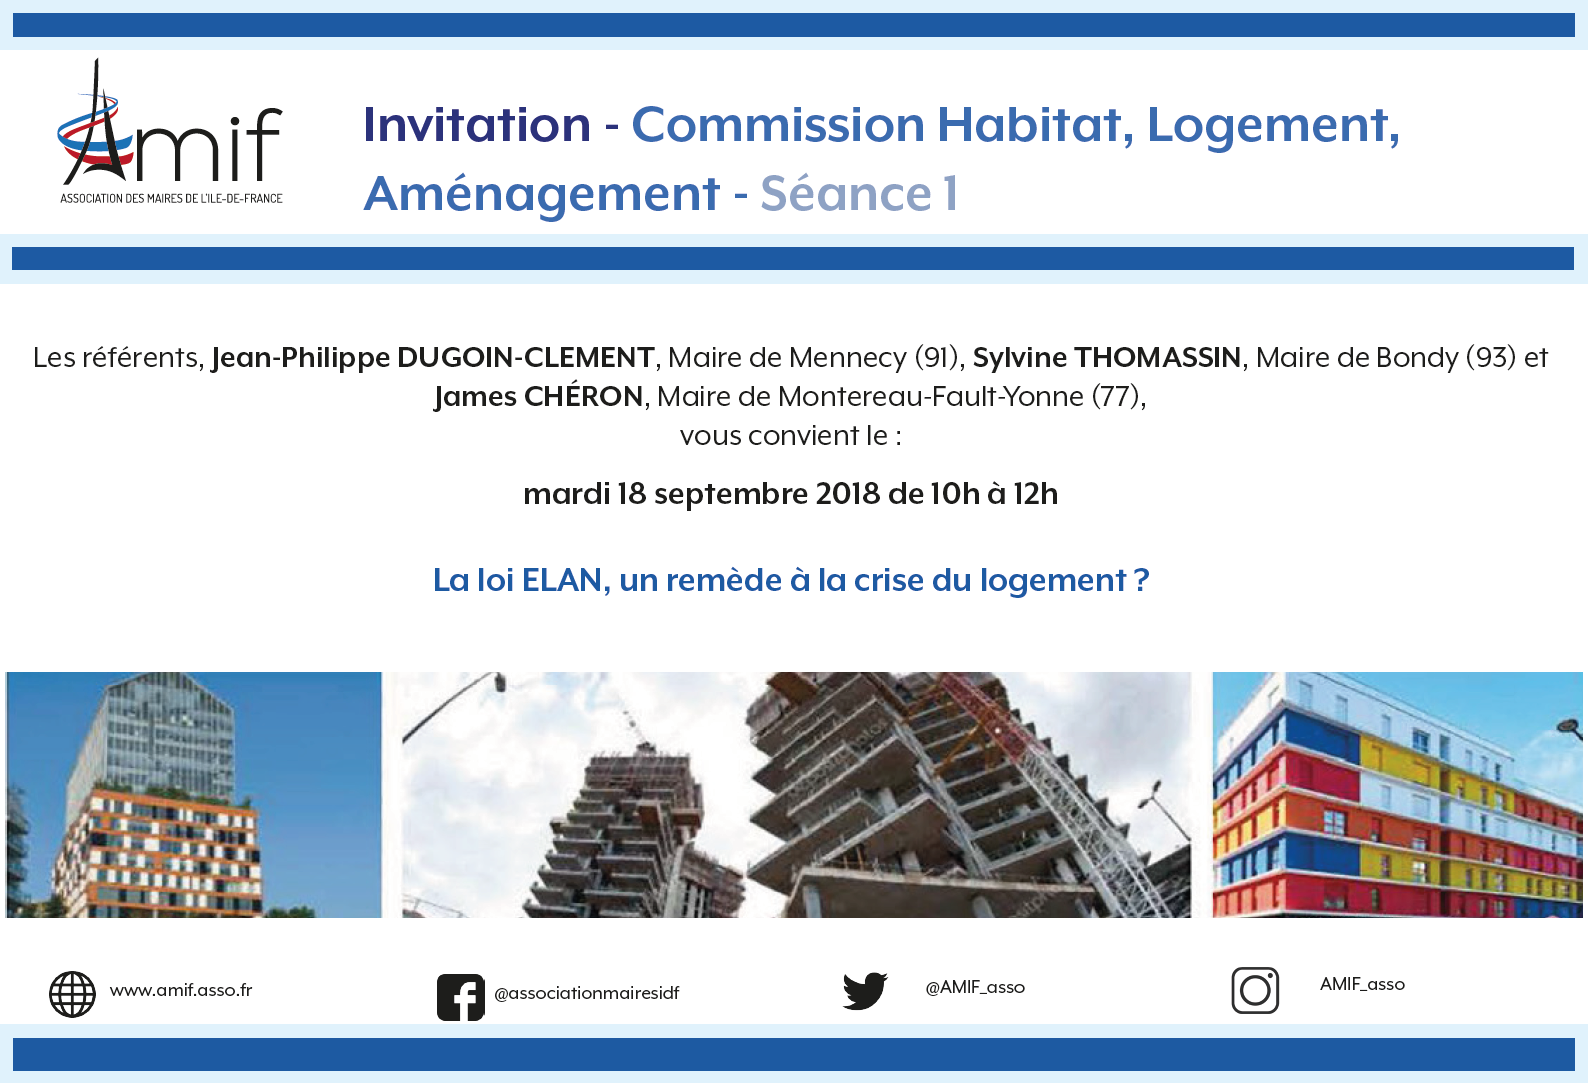 CommissionHabitatLogementAmenagementSeance118septembre2018v2